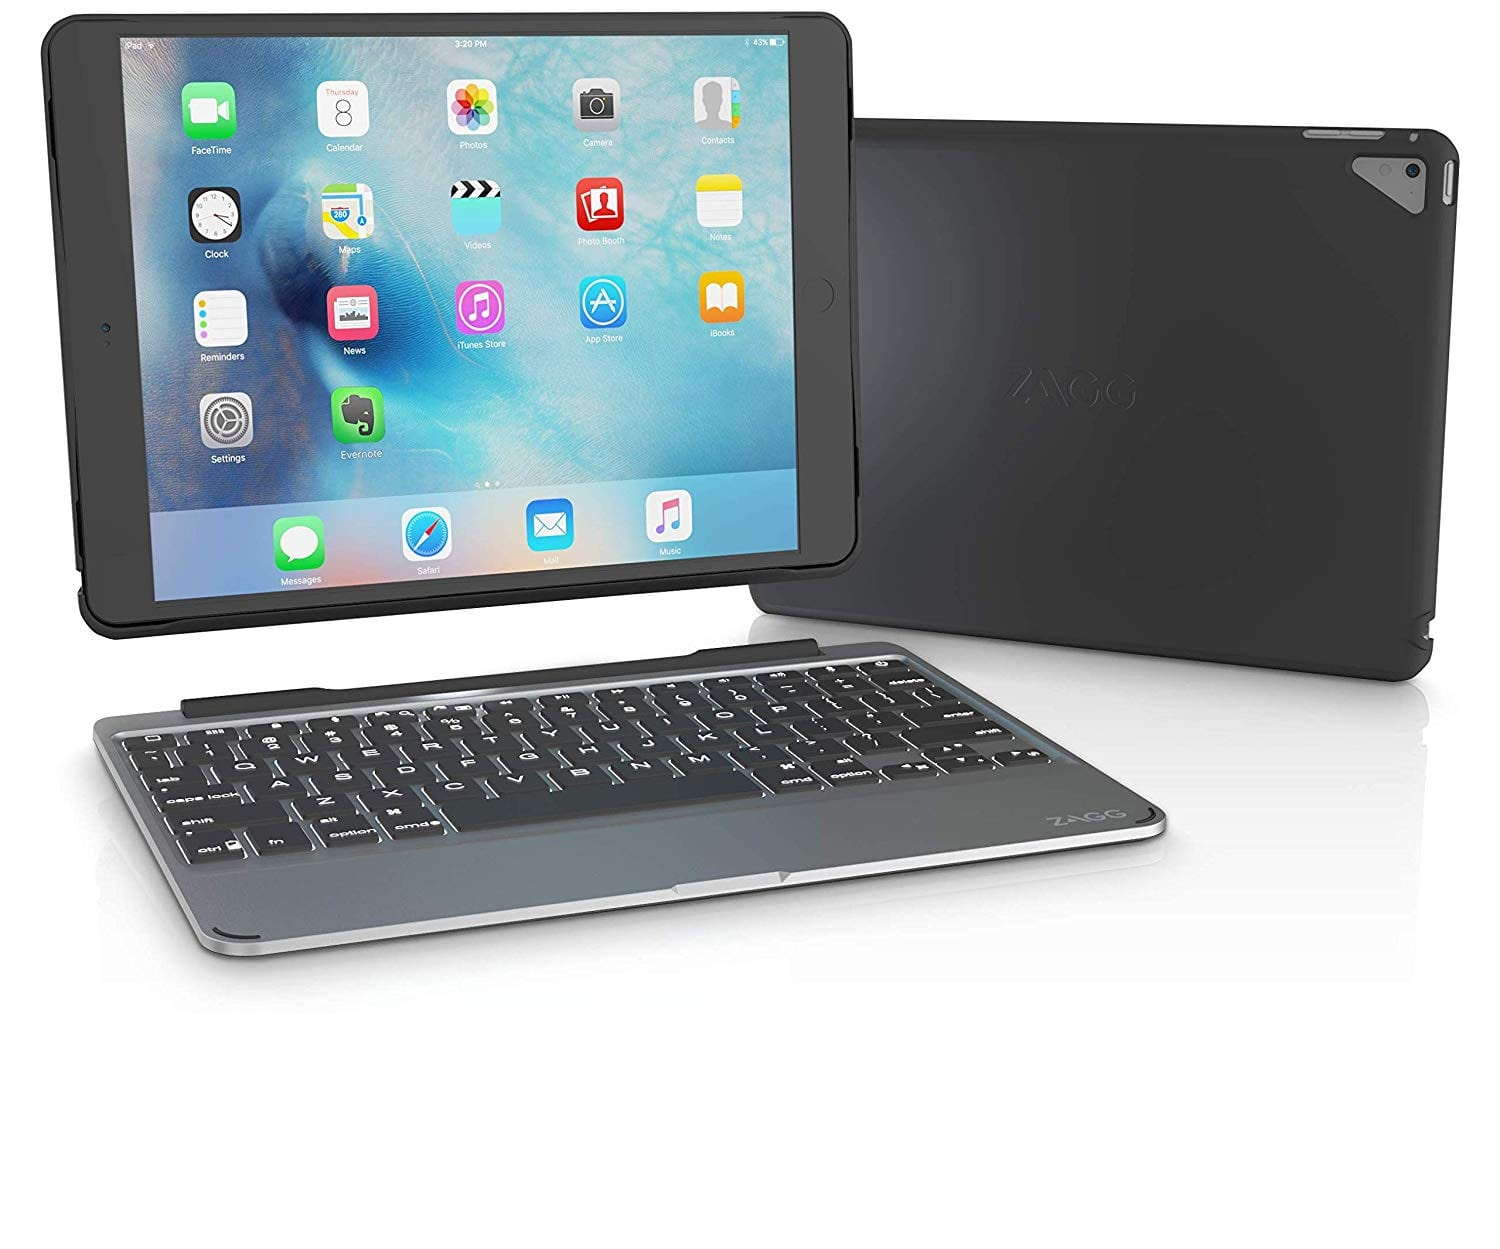 ZAGG Slim Book Ultrathin Case, Hinged with Detachable Bluetooth Keyboard for Apple iPad Pro 9.7 - Black $18.89